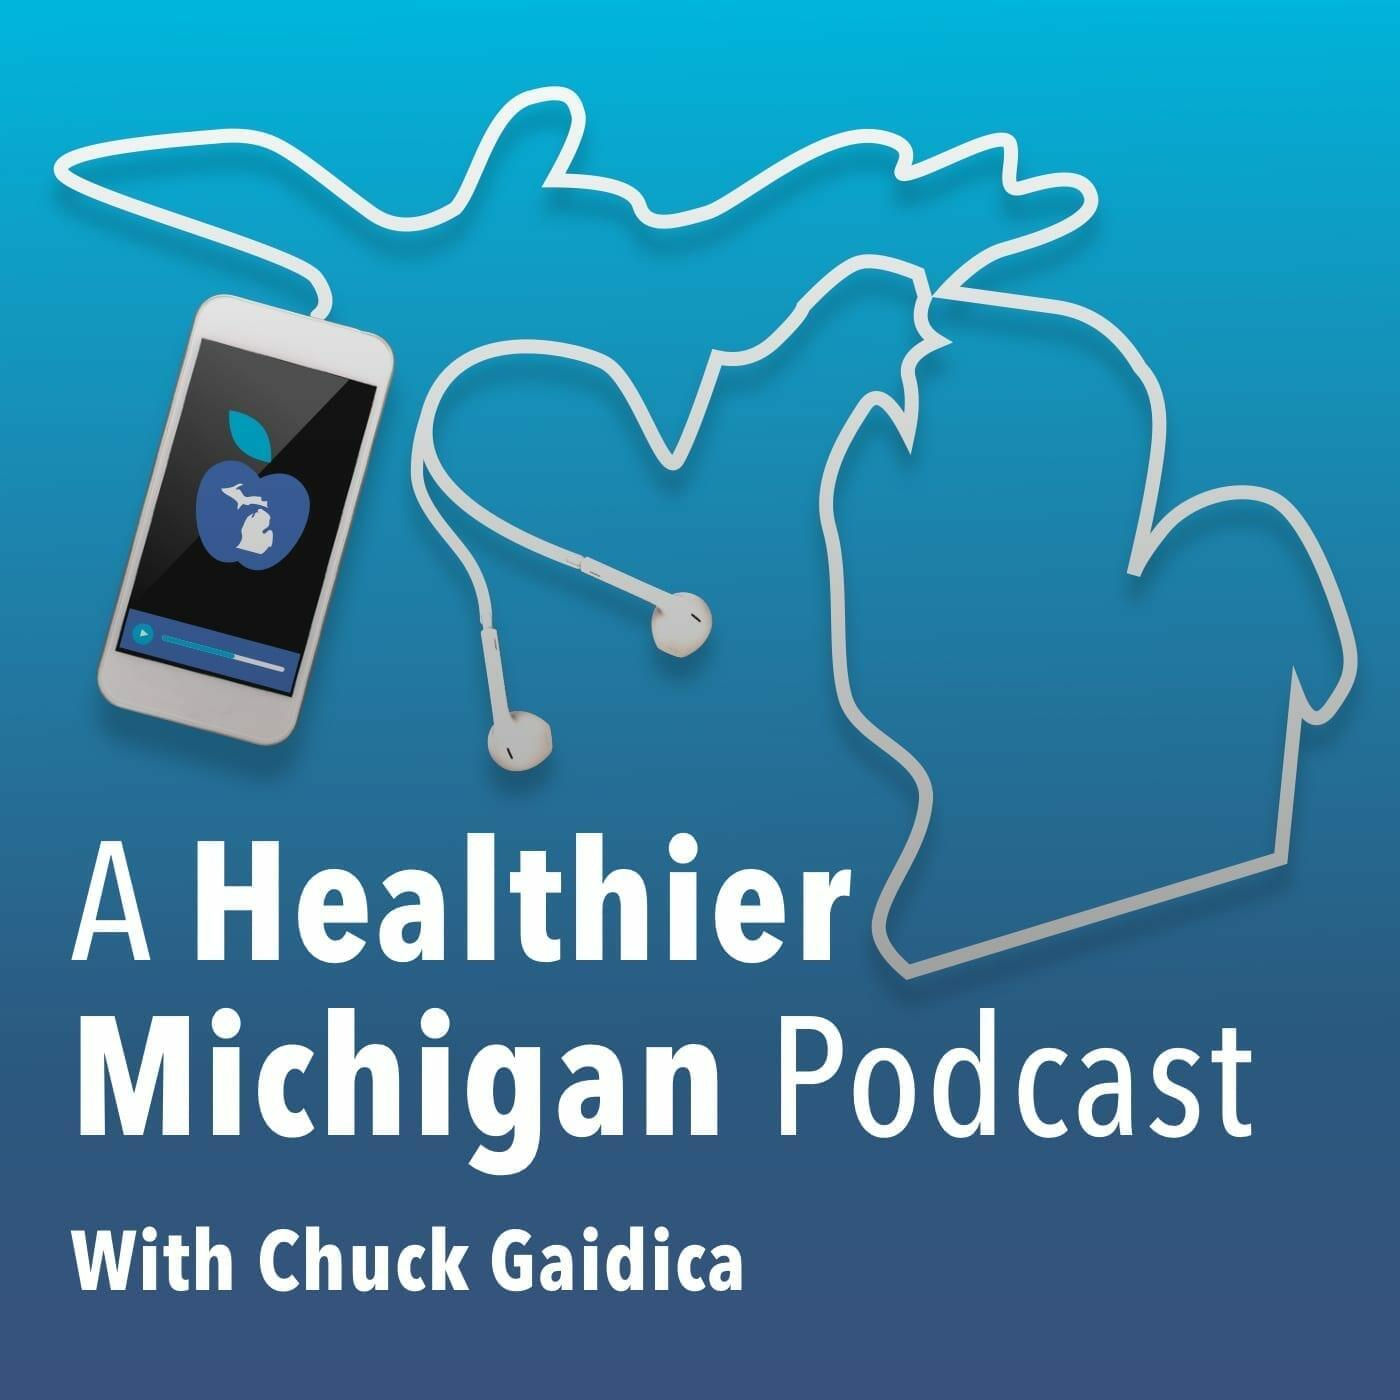 A Healthier Michigan Podcast